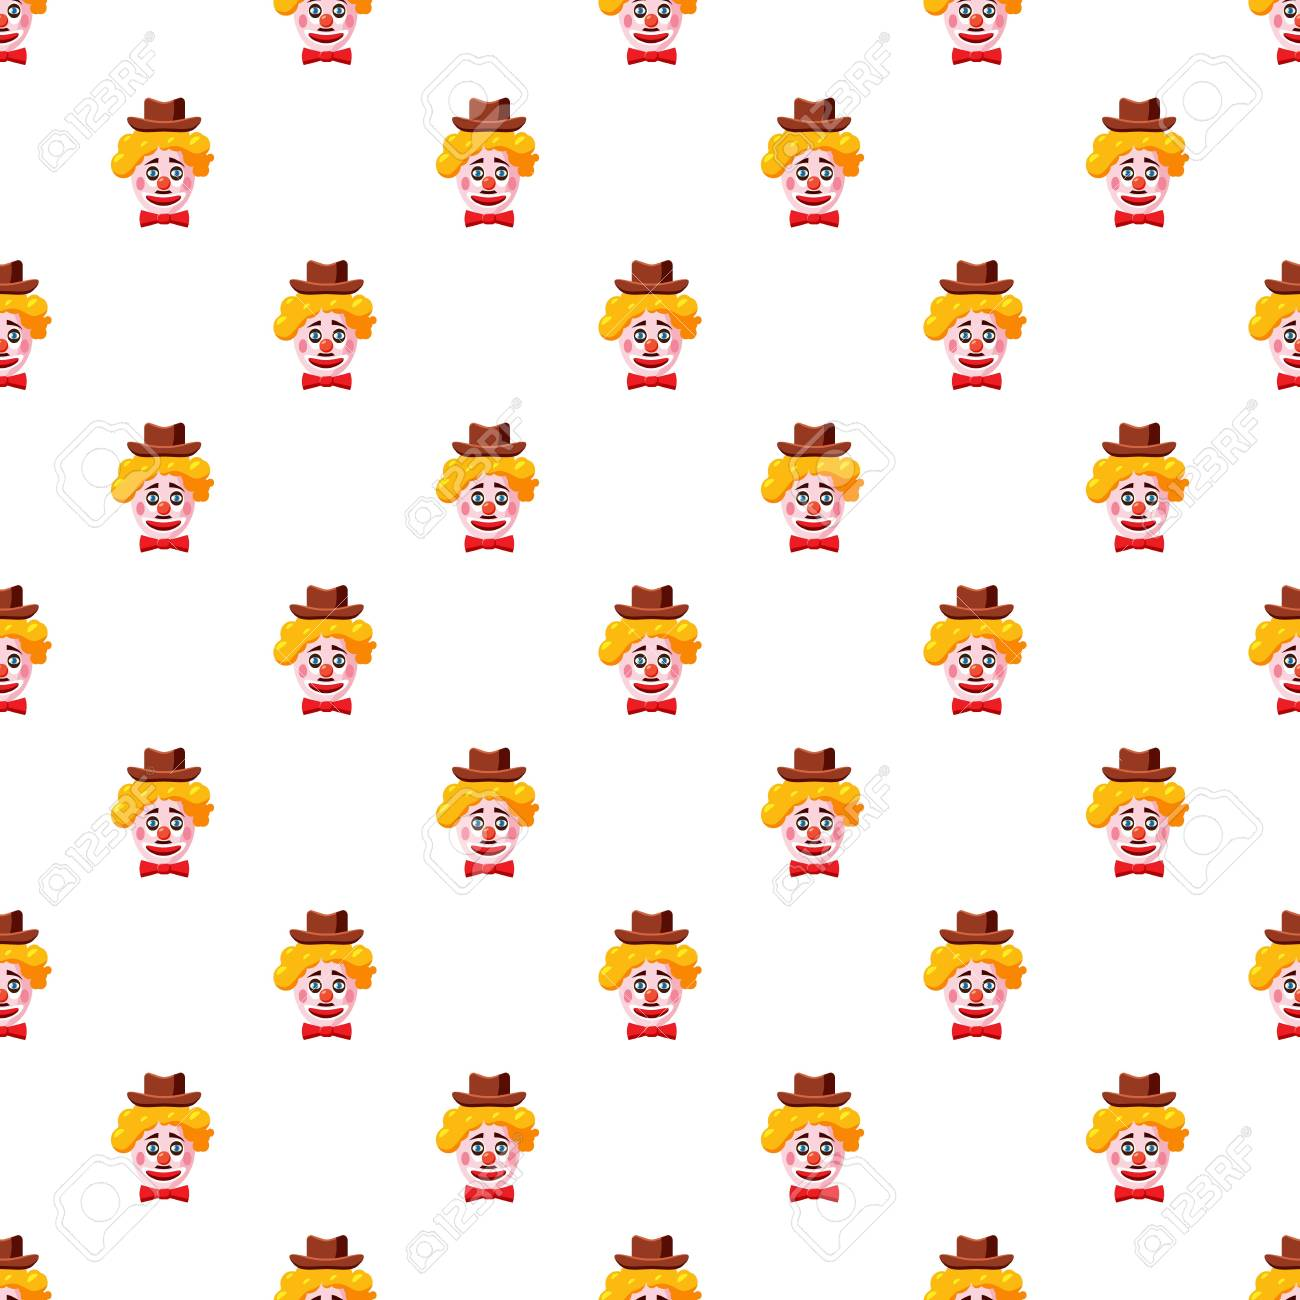 Clown face with hat pattern Stock Vector - 82557947 c35ff423492